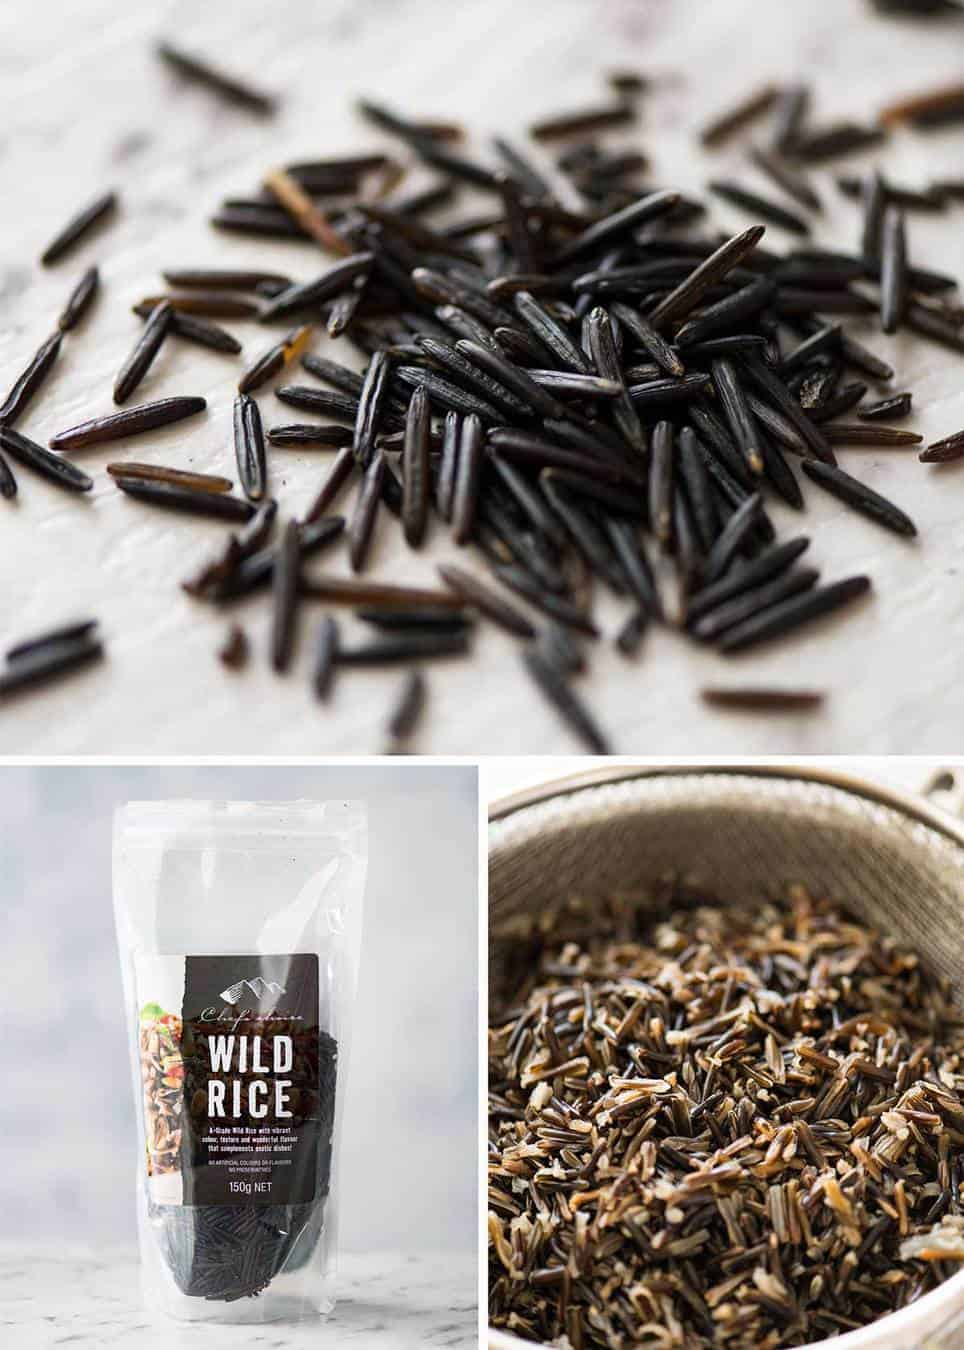 Wild Rice is actually a grain, not rice. It tastes nuttier and toasted, much more flavour than rice! recipetineats.com